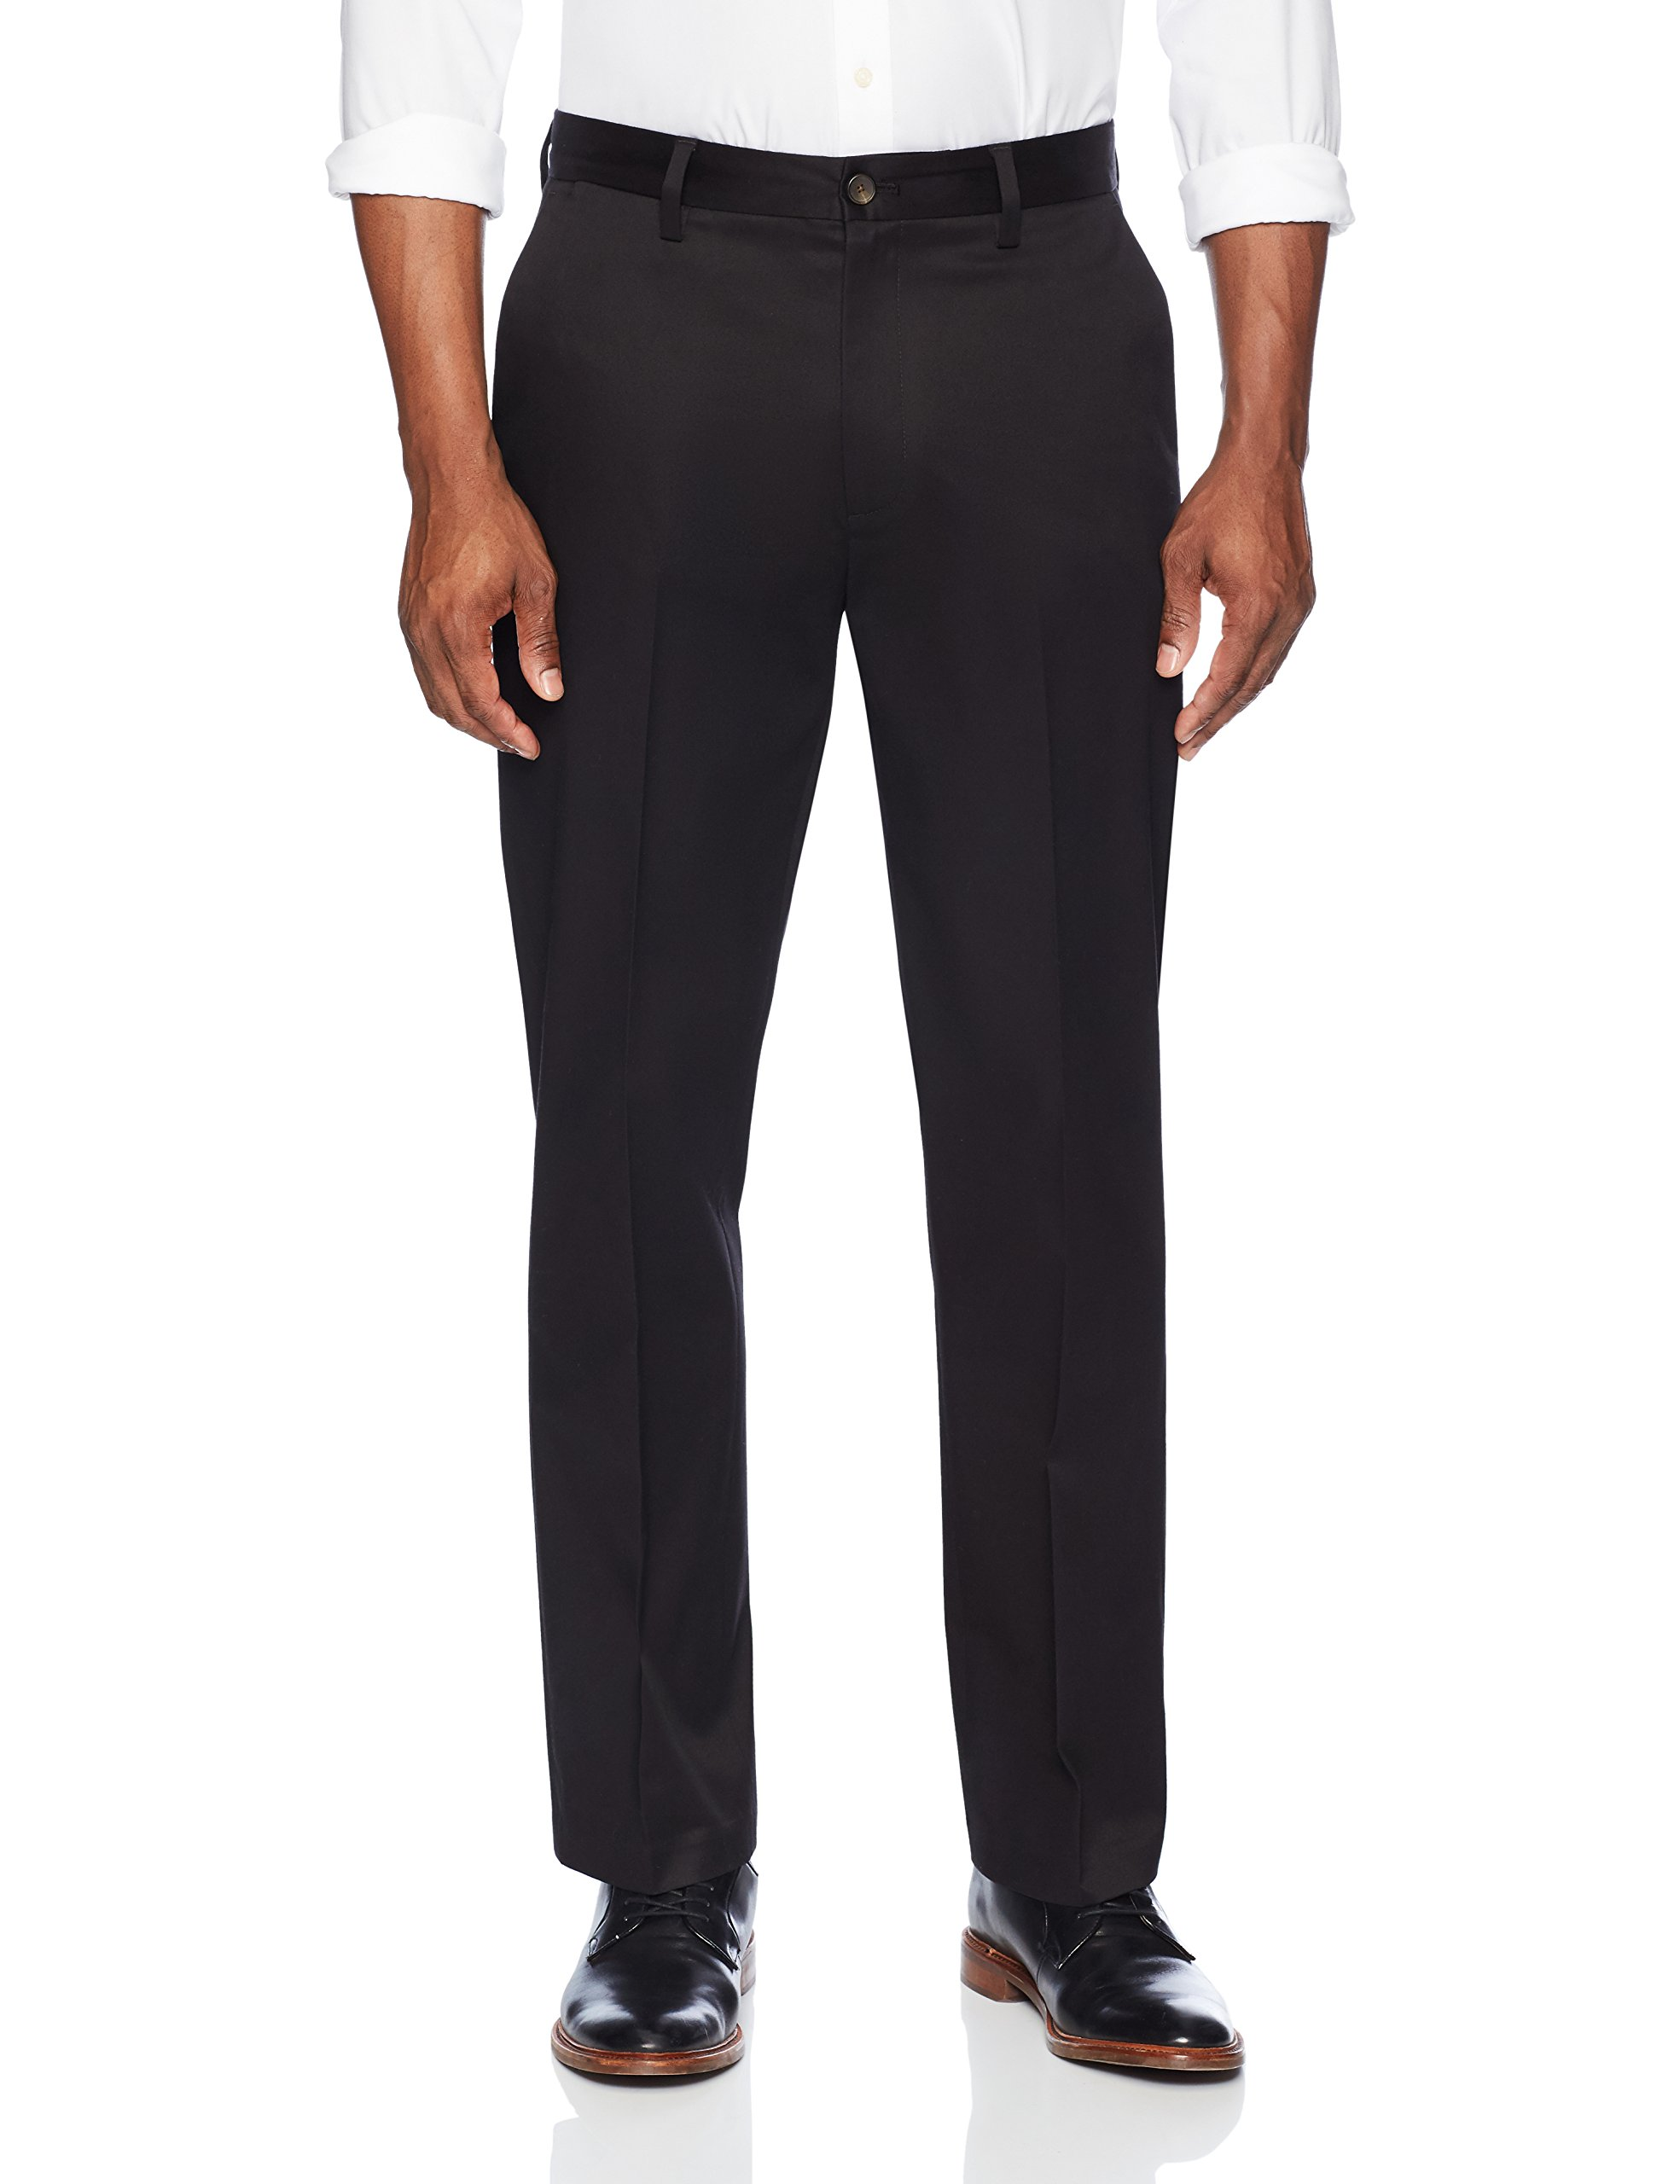 Buttoned Down Men's Relaxed Fit Flat Front Stretch Non-Iron Dress Chino Pant, Black, 36W x 32L